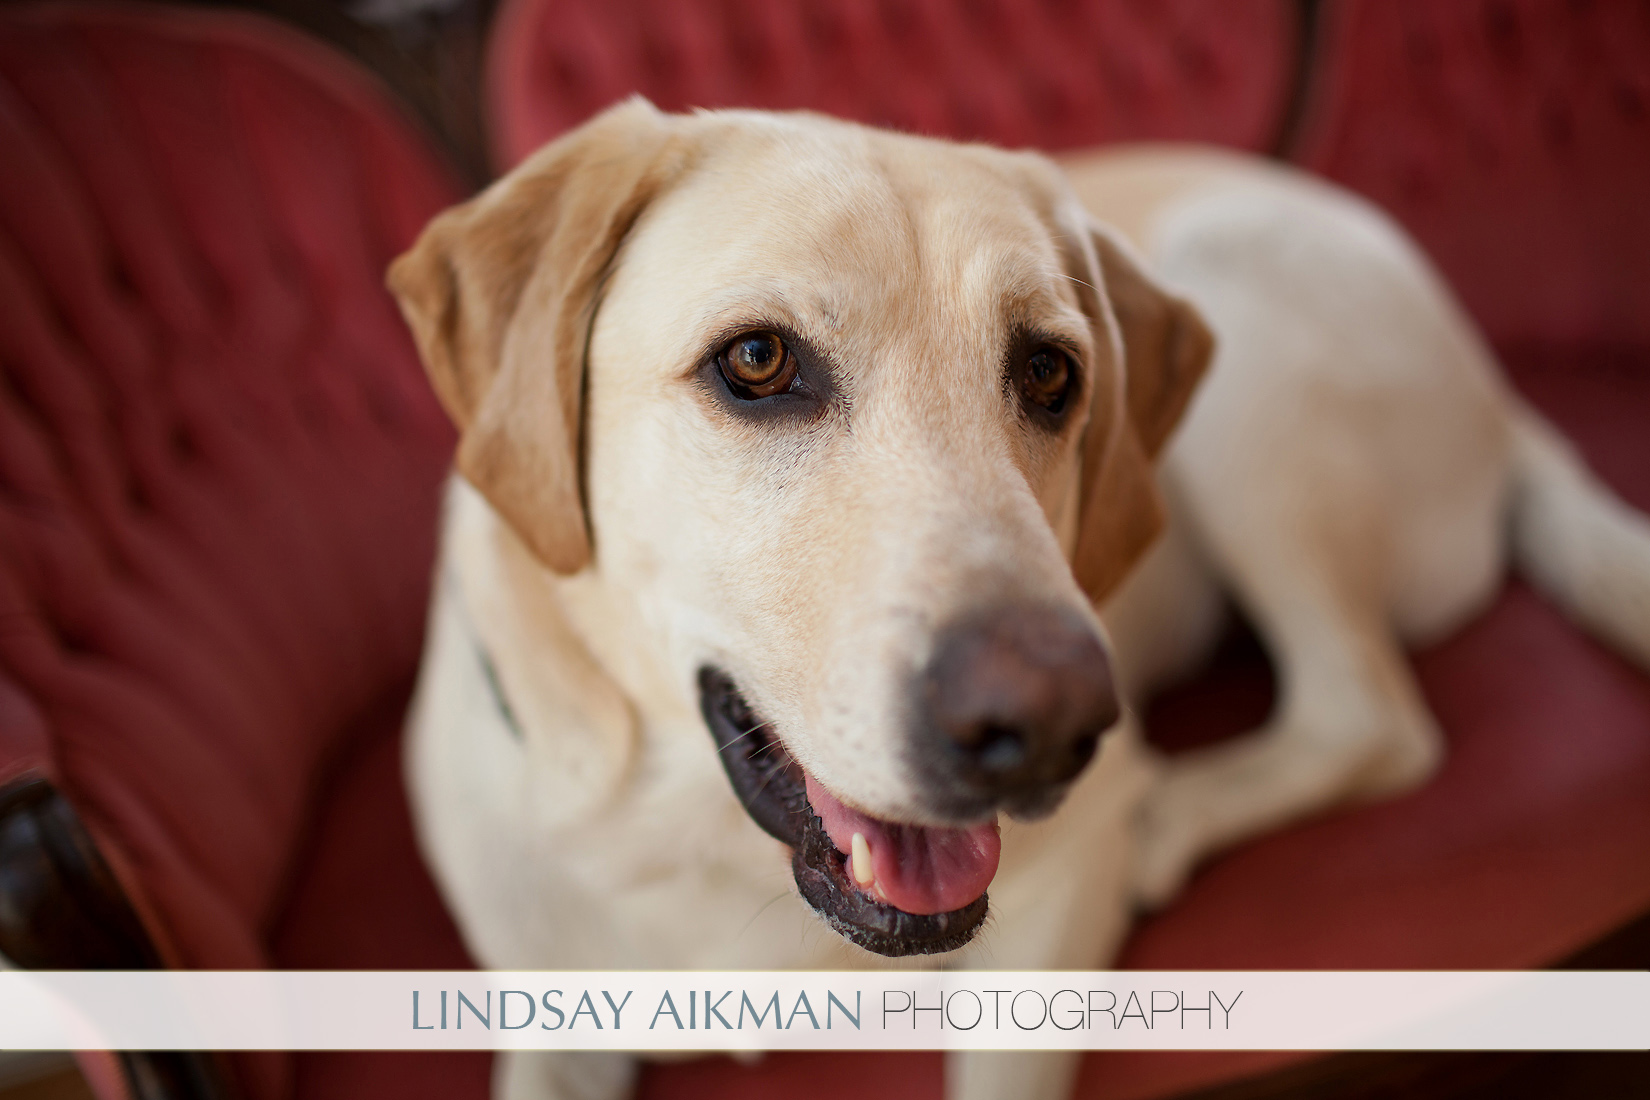 Pet Friendly Lindsay Aikman Photography